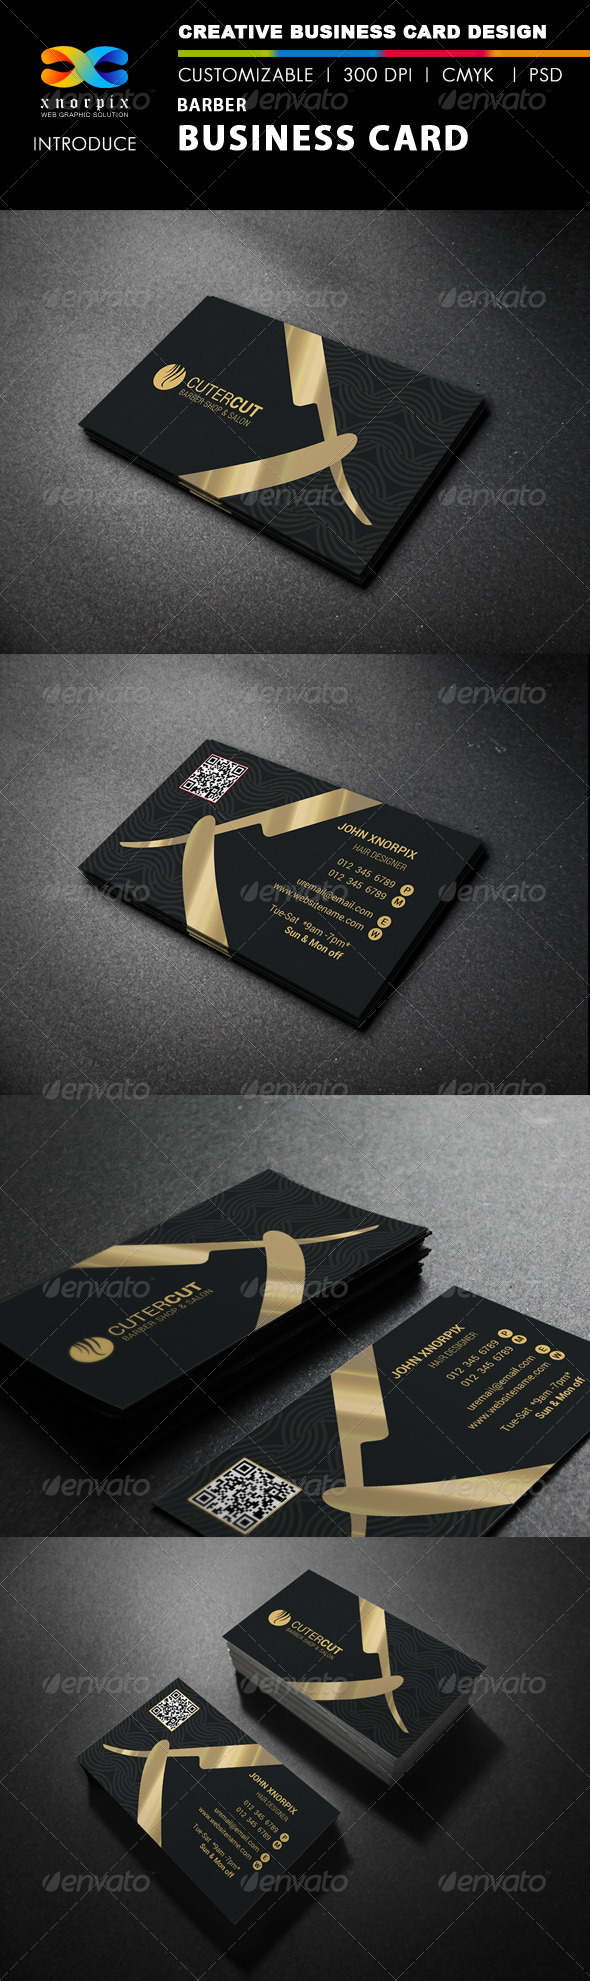 Barber Business Card - Print Templates